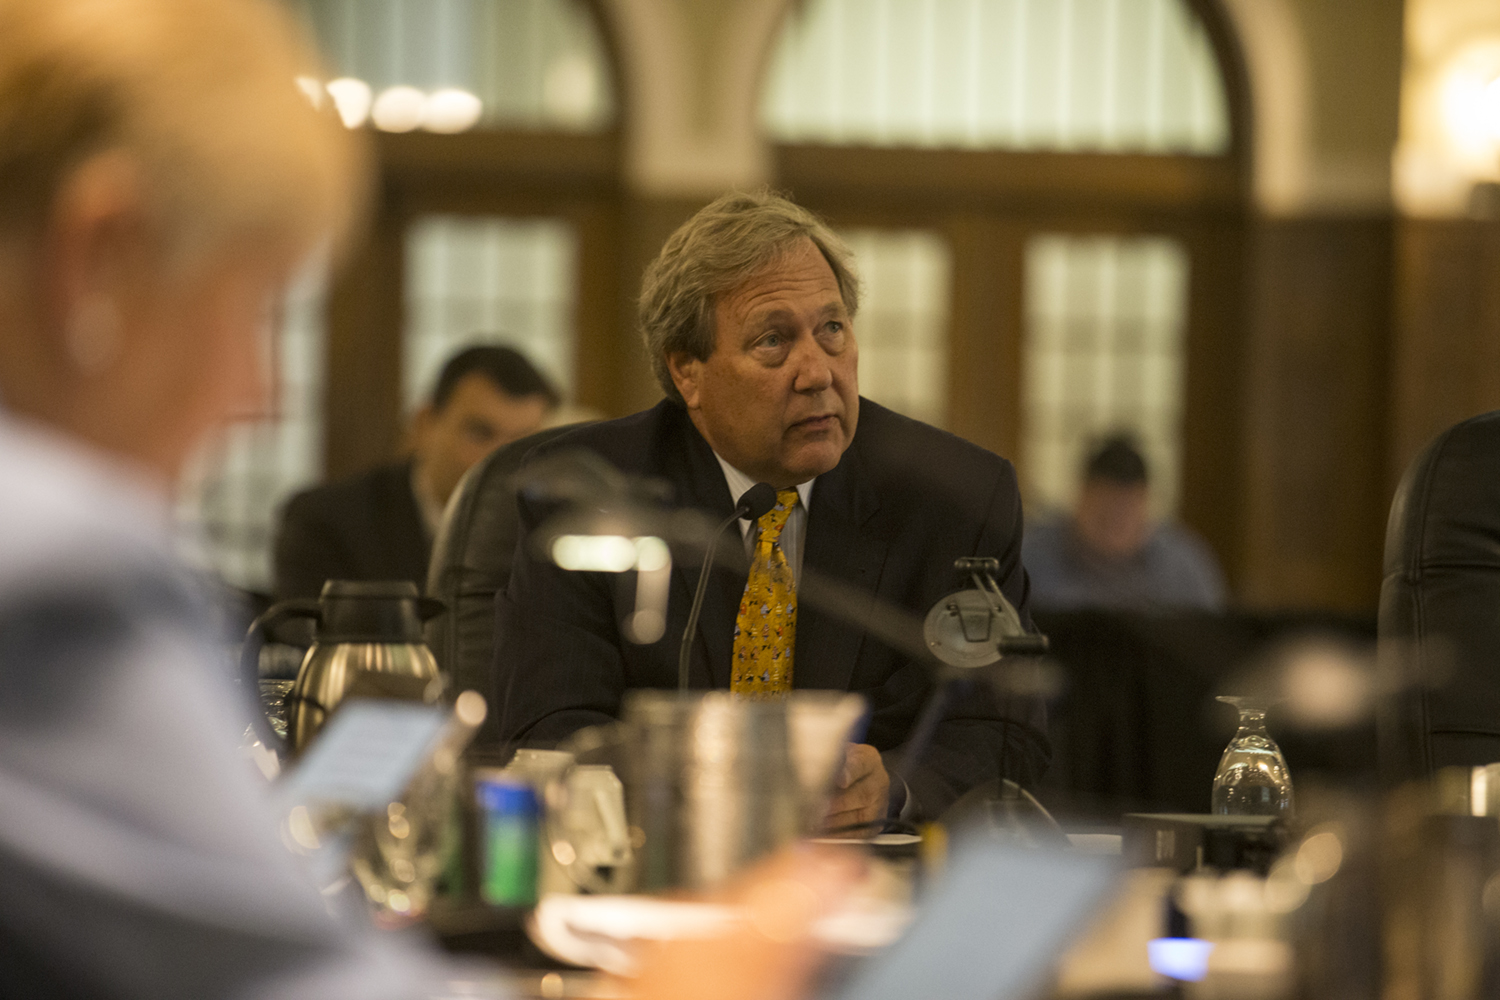 UI President Bruce Harreld delivers his announcement during the Board of Regents meeting on September 13, 2018 in the IMU Main Lounge.